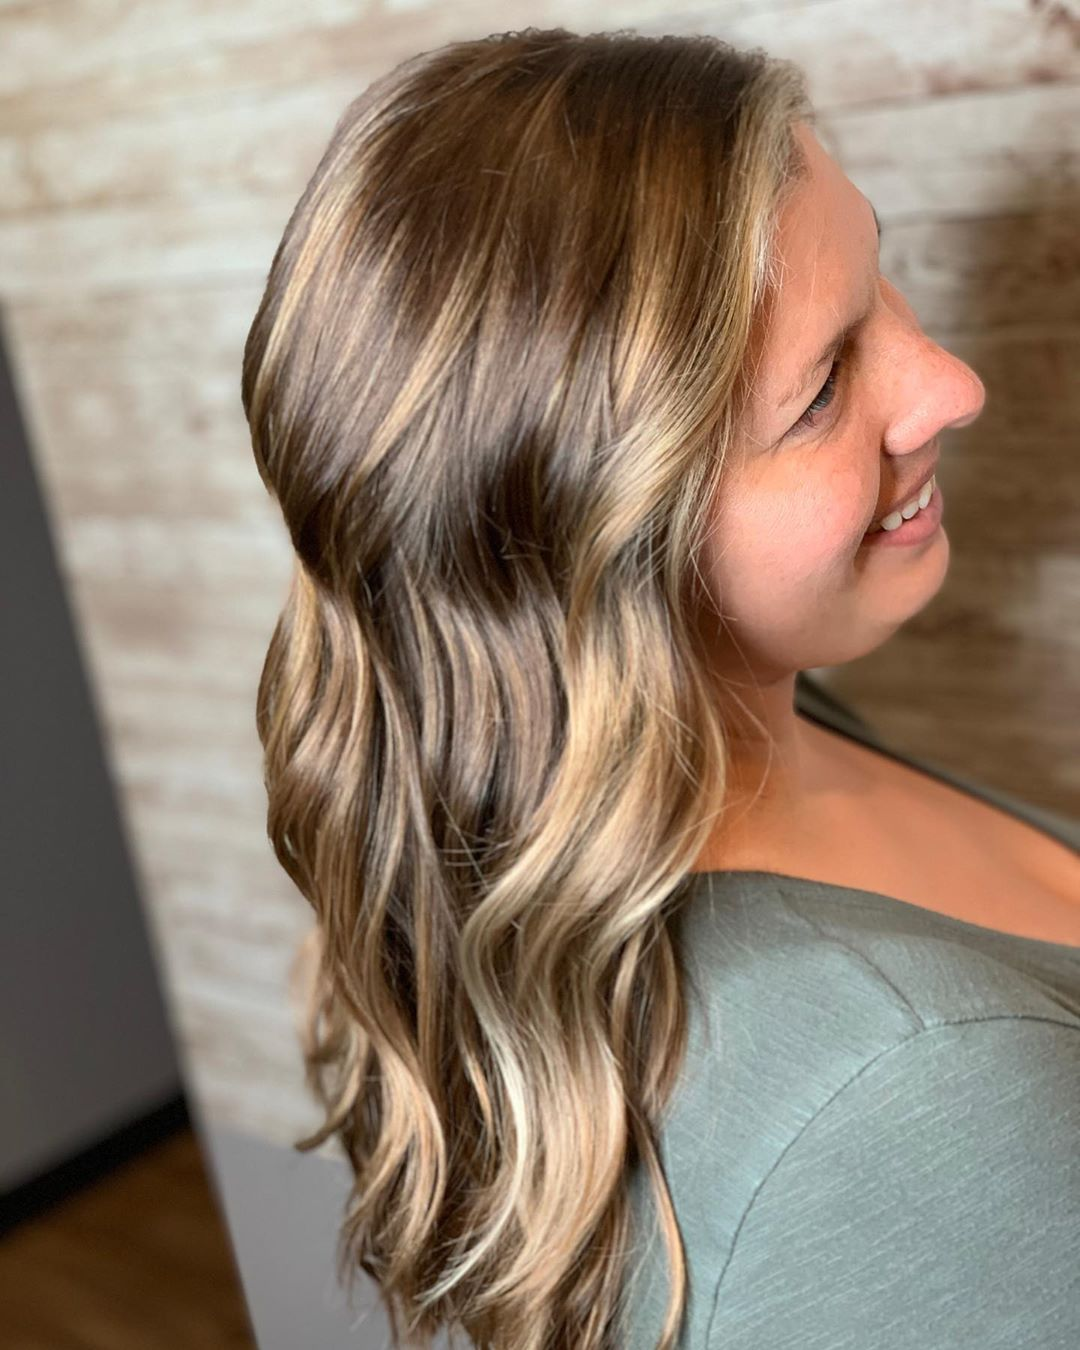 Natural And Blended Apprentice Apprenticeship Fun Cute Beauty Beautiful Cosmetology Cosmetologist Hair Makeup N In 2020 Haare Haar Styling Aveda Farbe